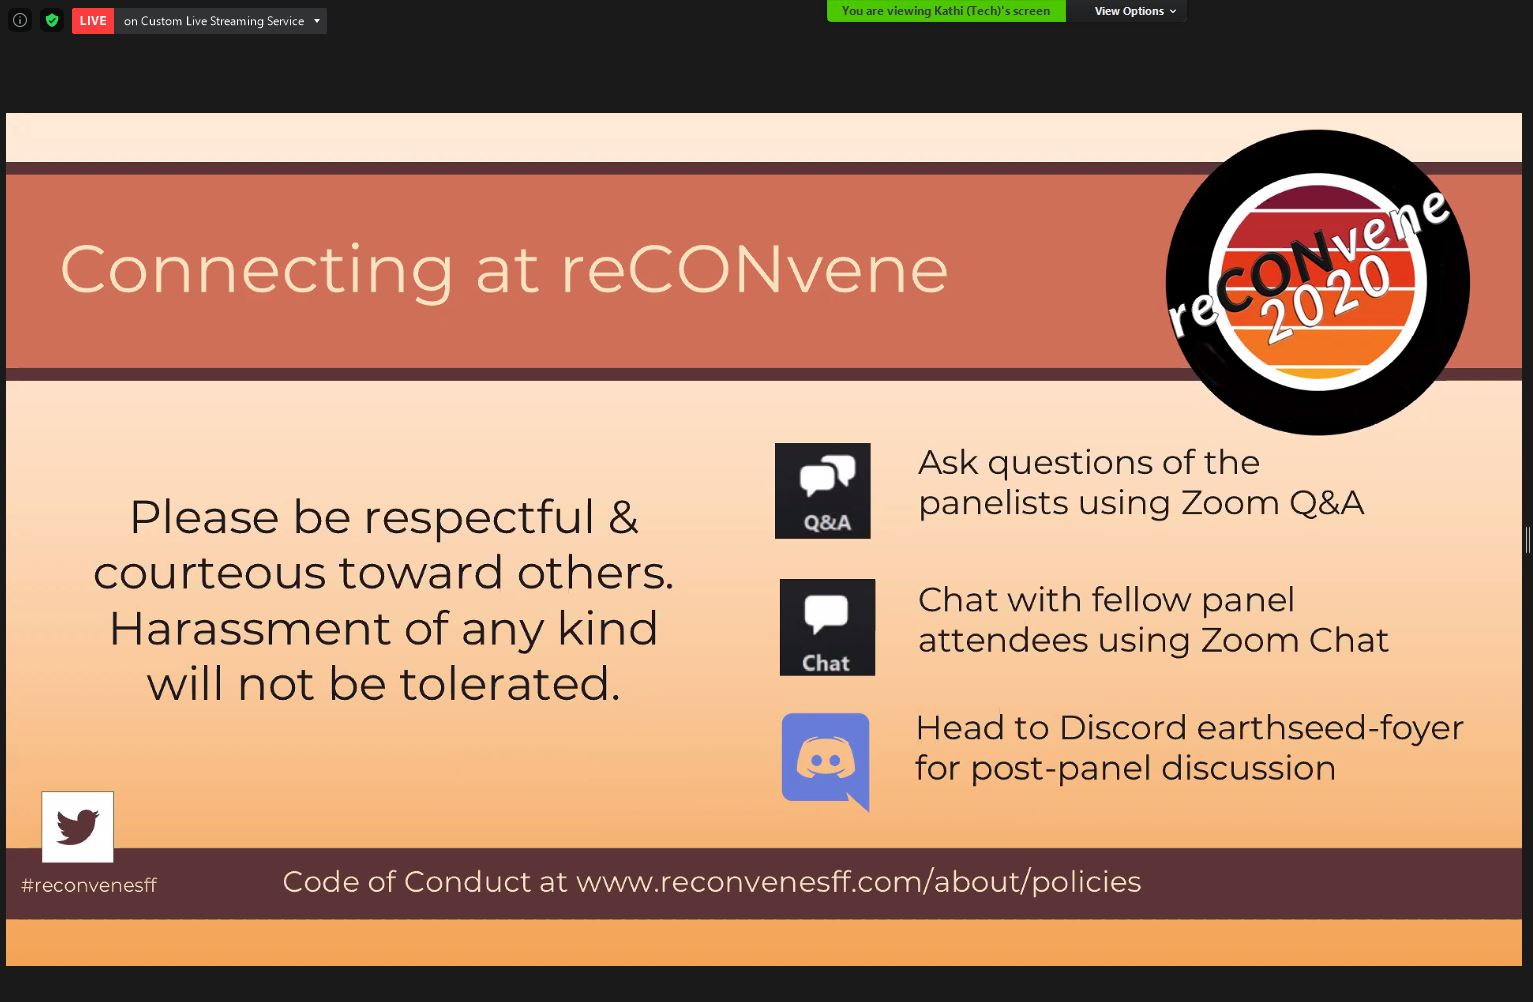 A slide in the presnetation. It shows mainly text explaining how to behave during a panel and how to use Zoom and Discord.